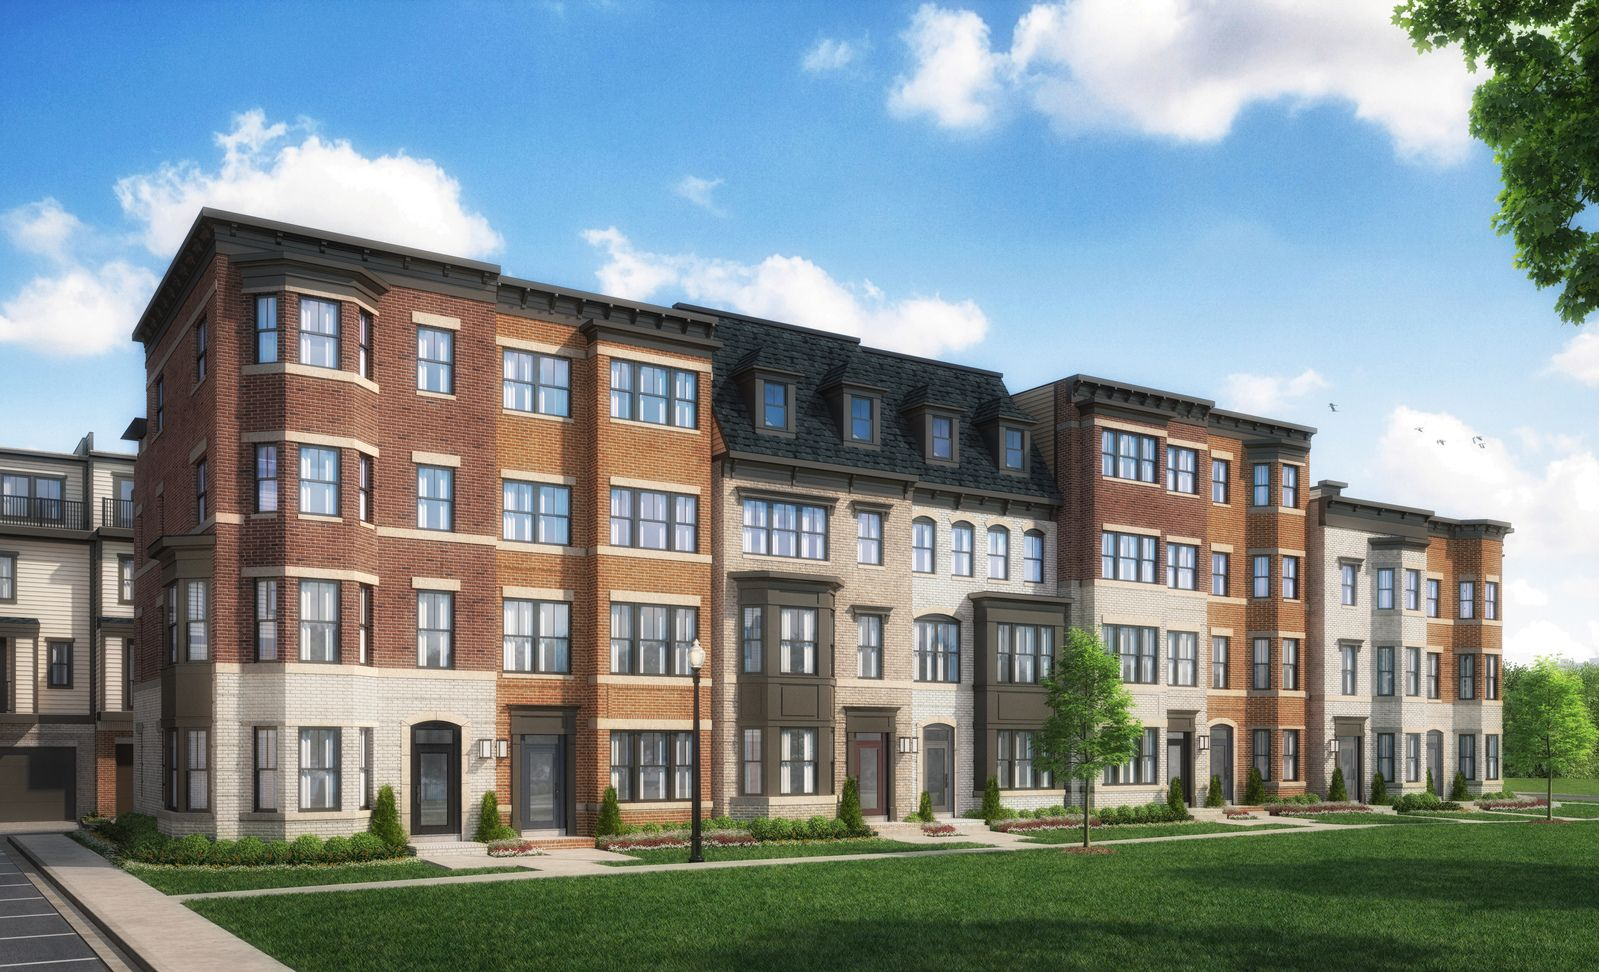 Stately NV Townhomes in The Town of Vienna:Join ourVIP listto learn more about our boutique collection of just 38 residences, located within walking distance of shops, dining, and more.